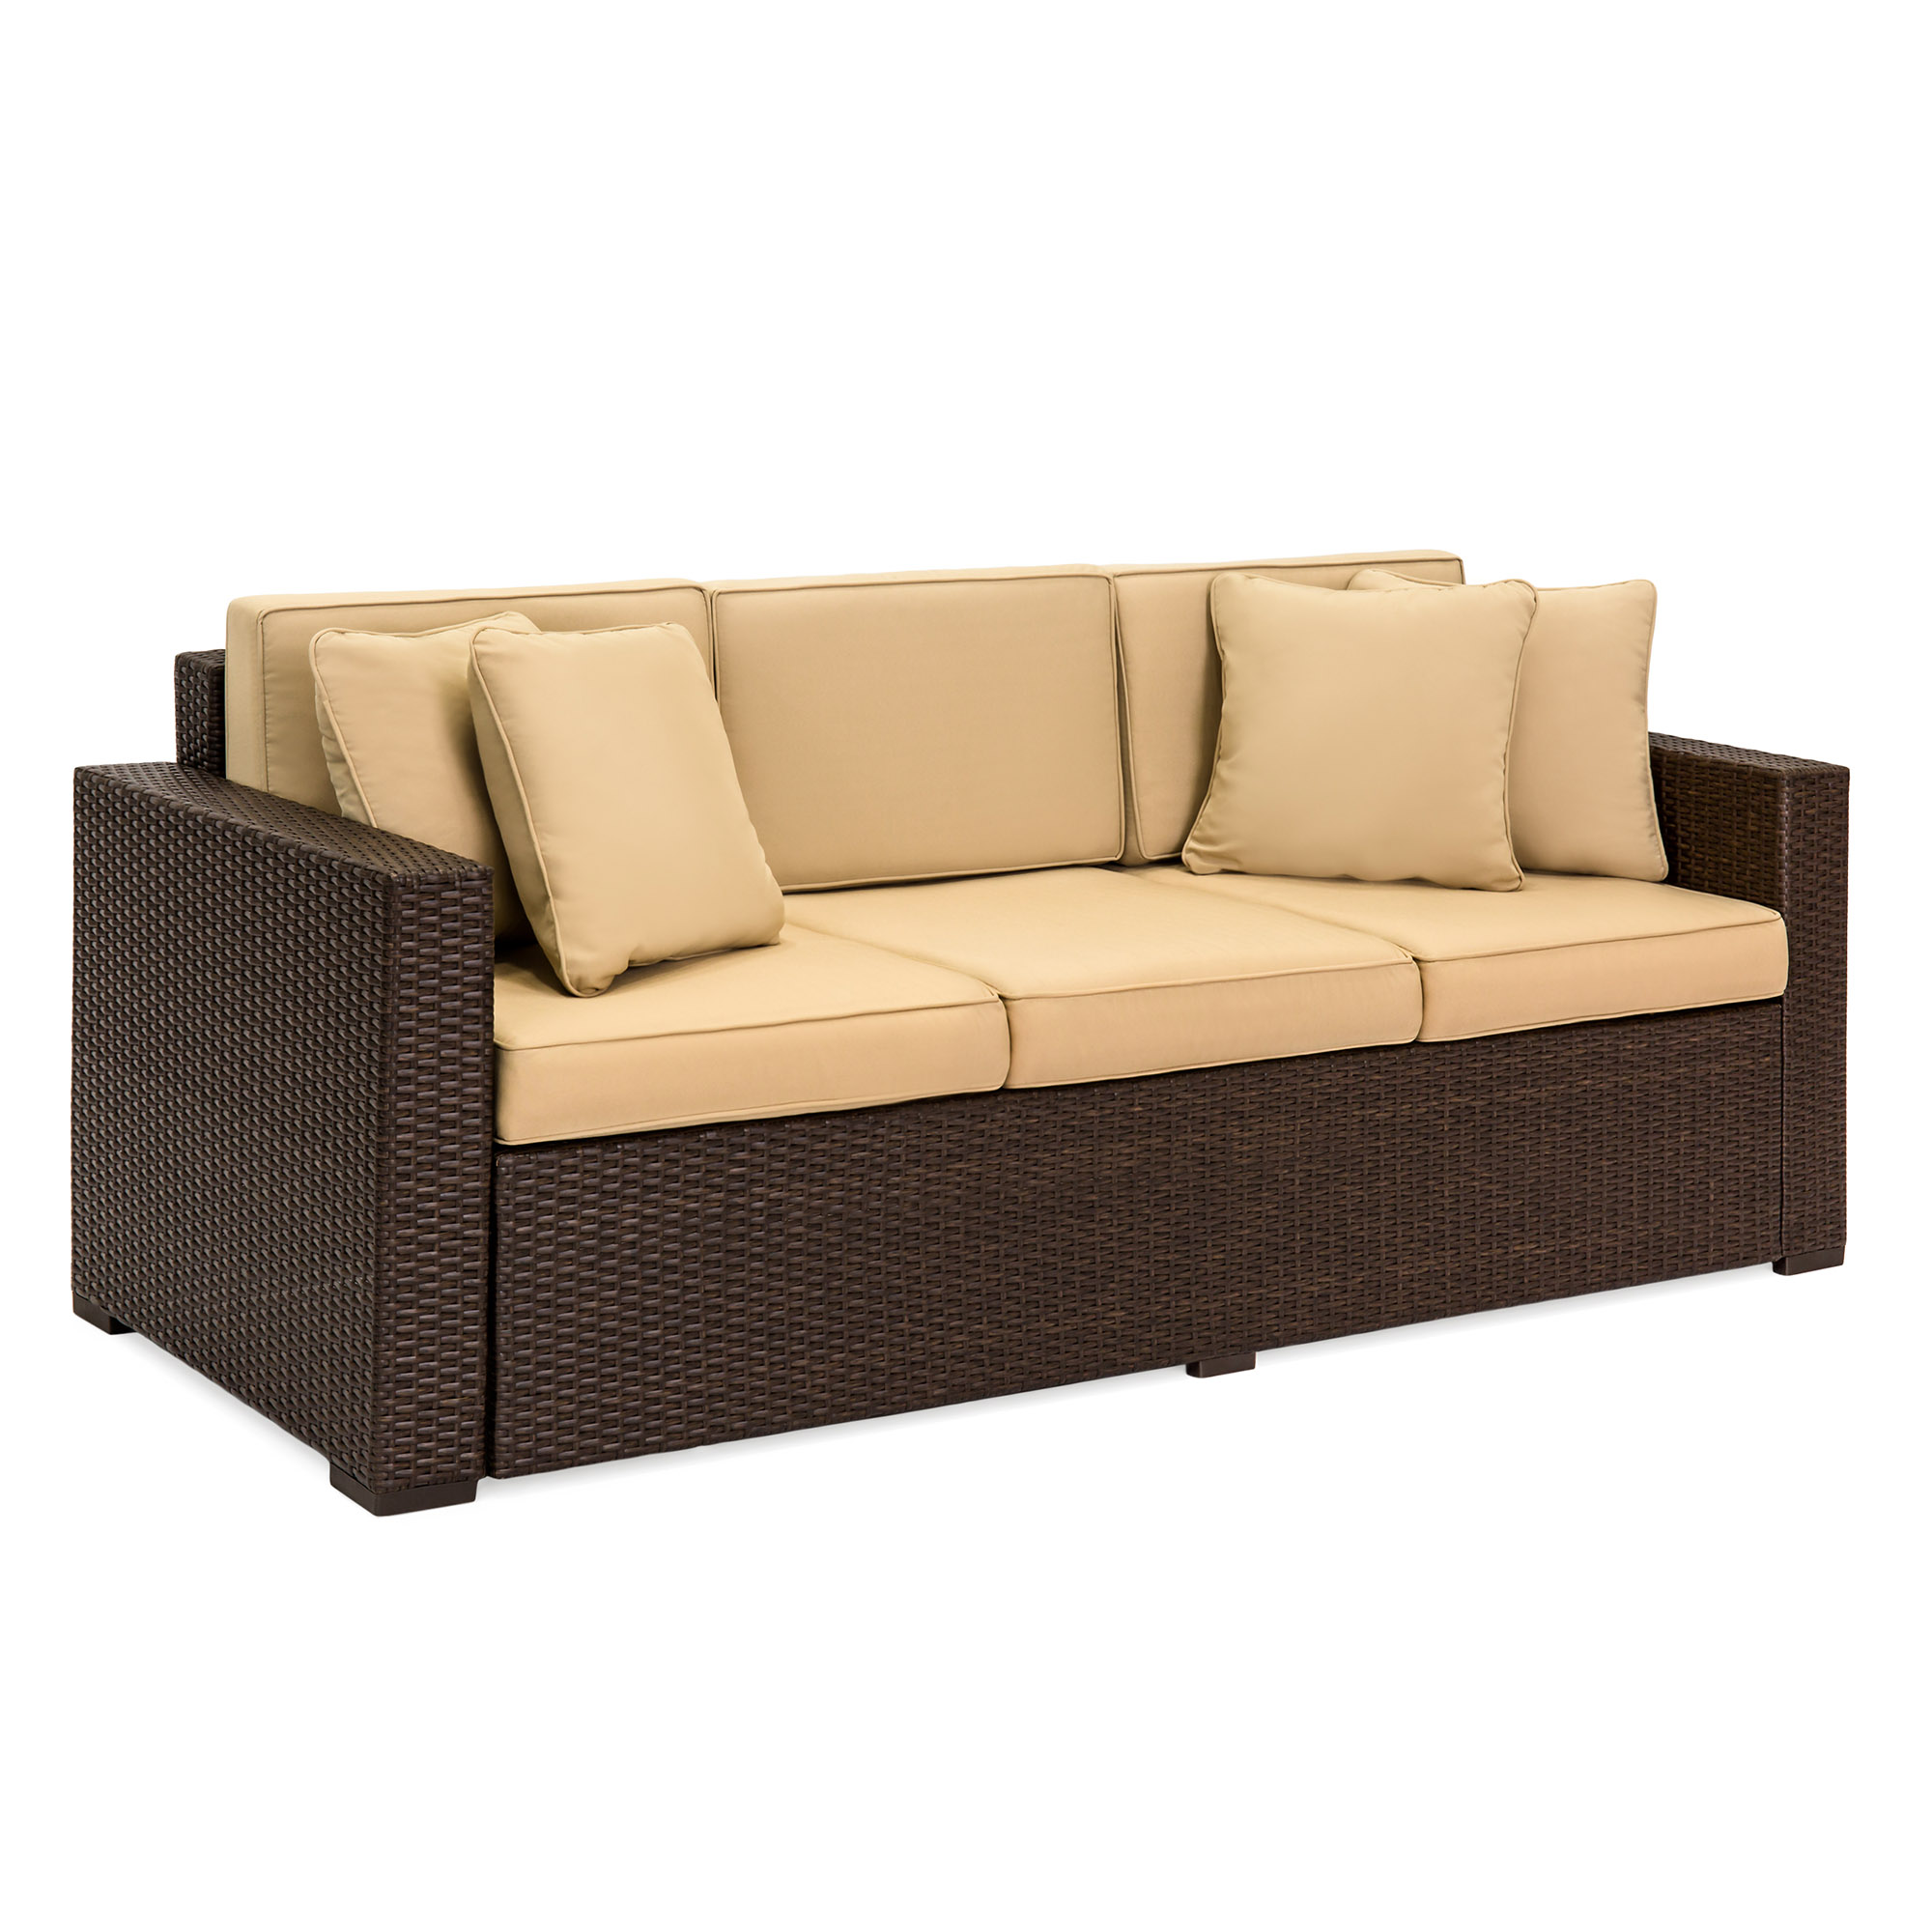 Best Choice Products 3 Seat Outdoor Wicker Sofa Couch Patio Furniture W/  Steel Frame